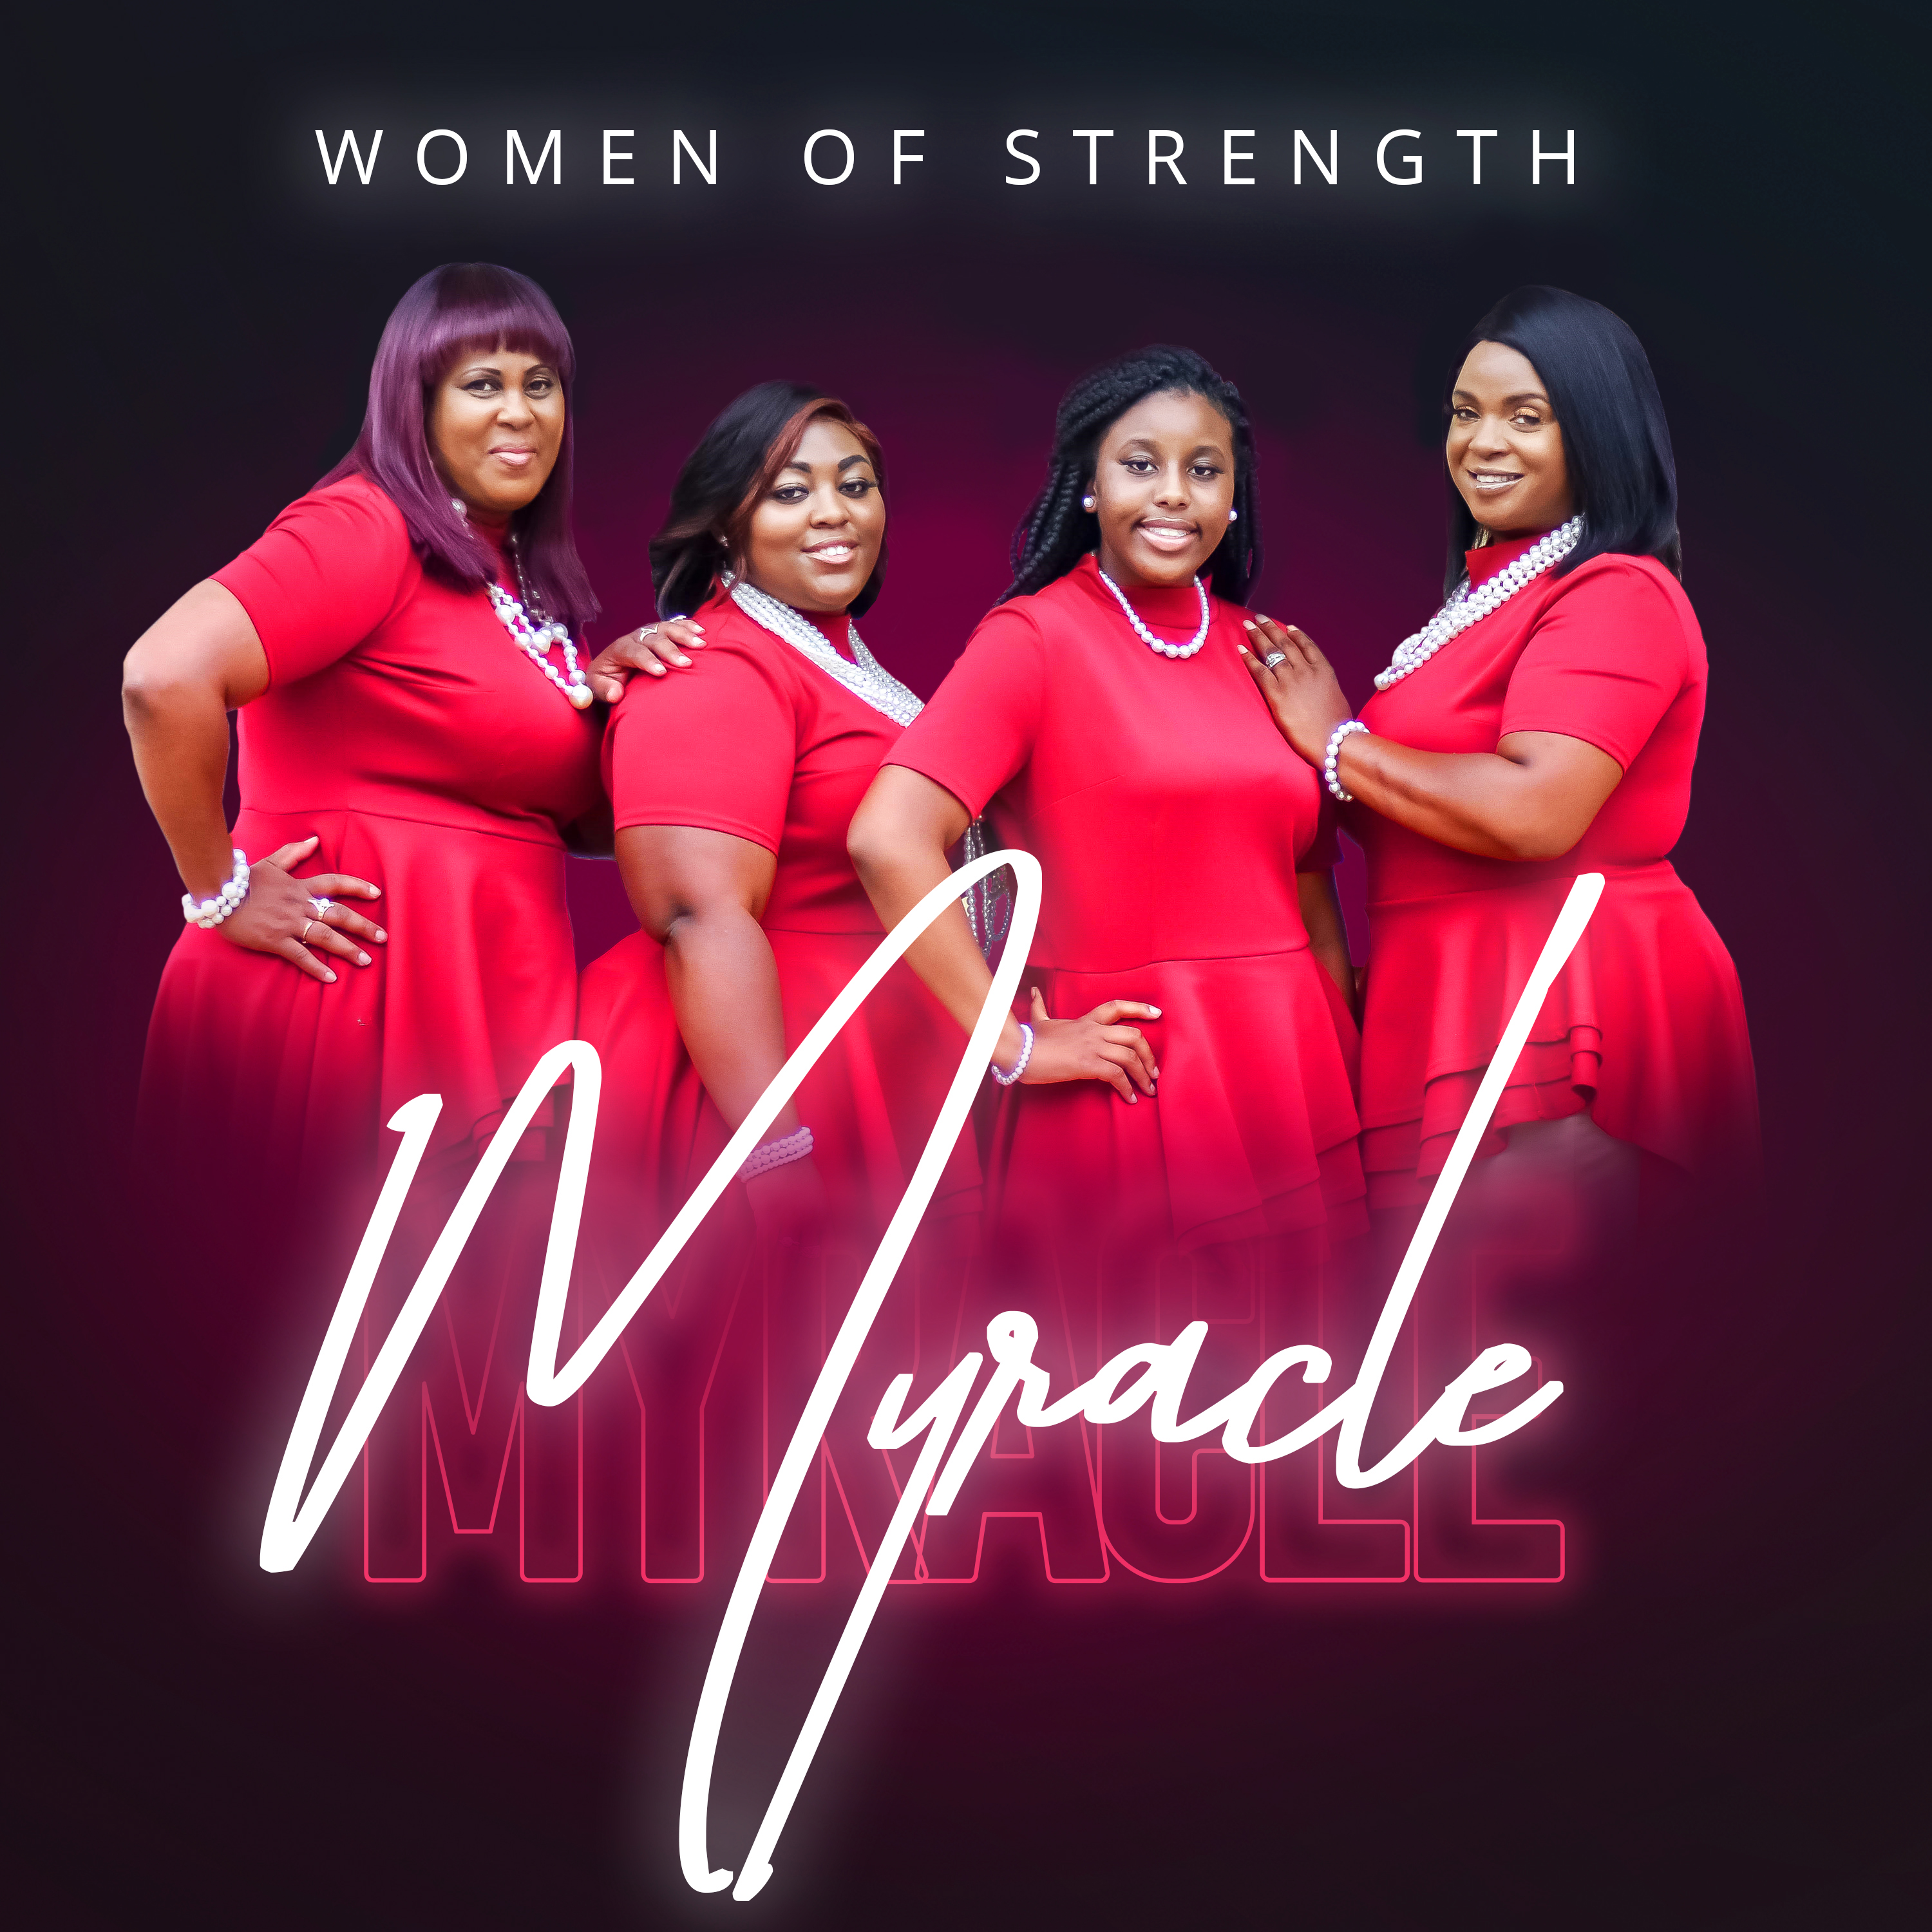 Art for Alright by Women of Strength